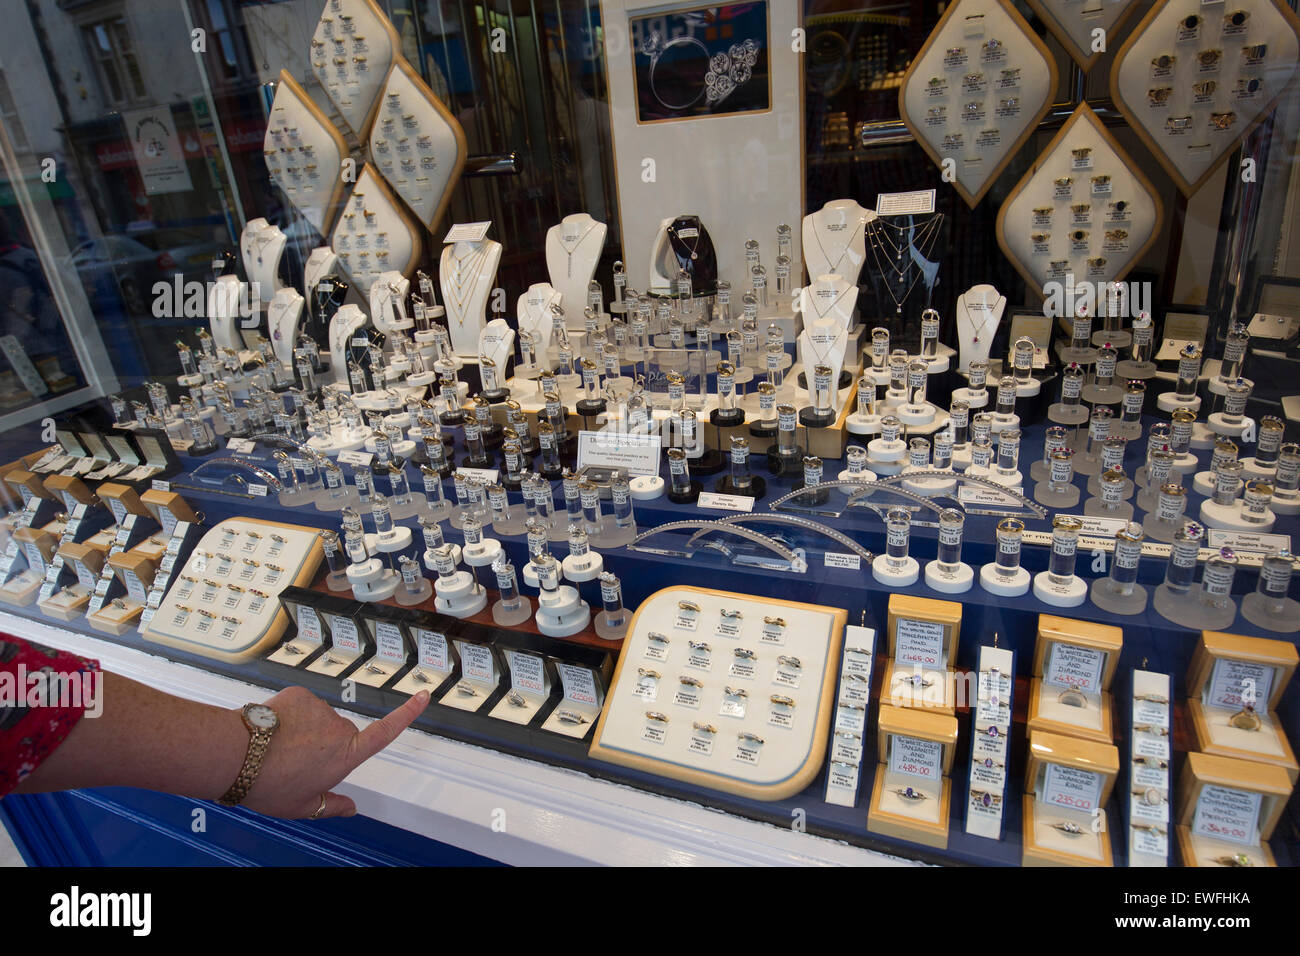 11b93253682 Jewelers Shop Window Stock Photos   Jewelers Shop Window Stock ...